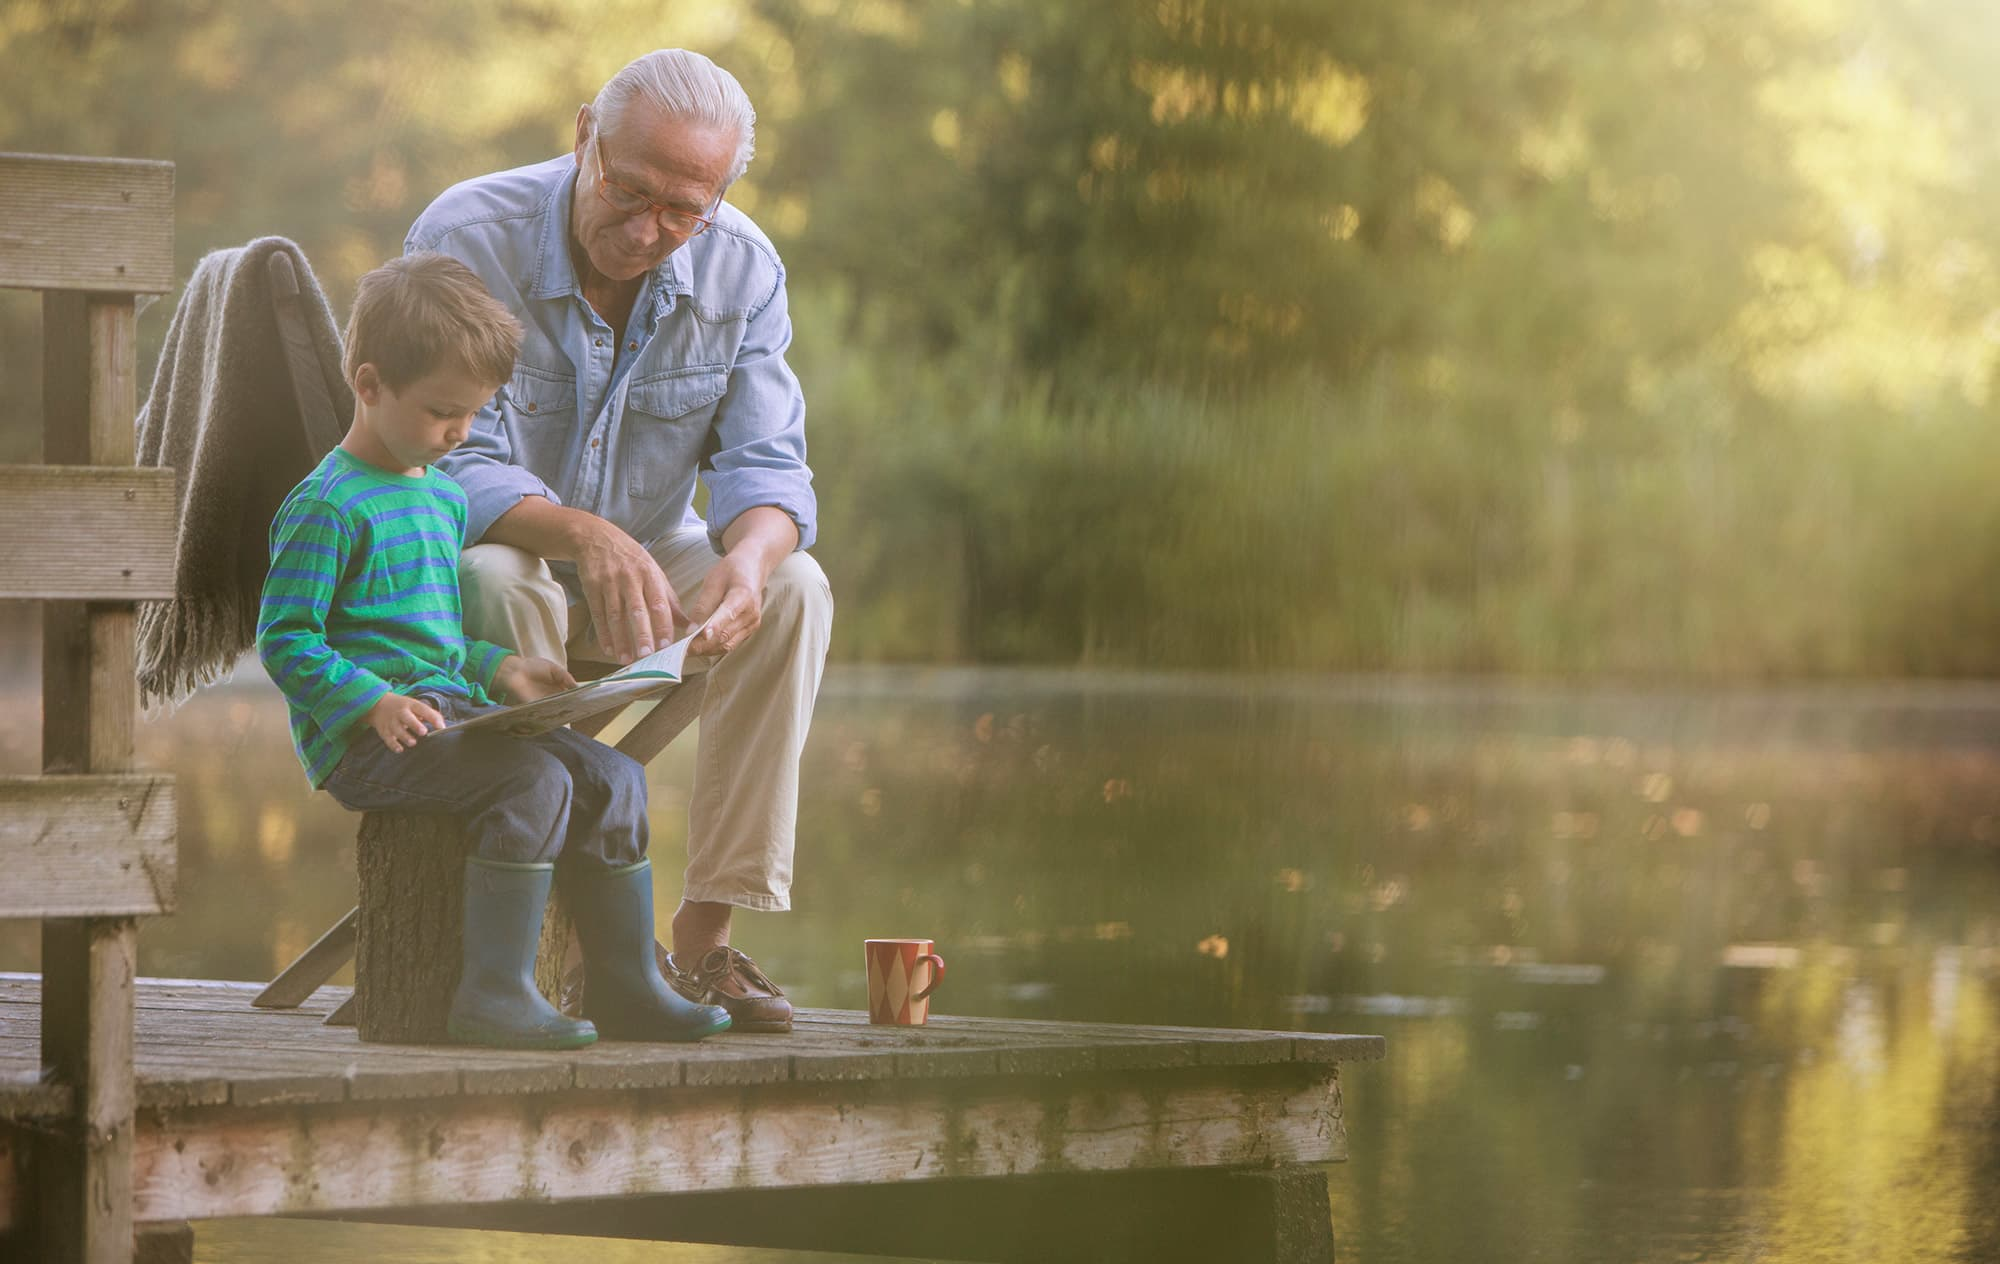 Grandkids come with big tax benefits, if you're raising them